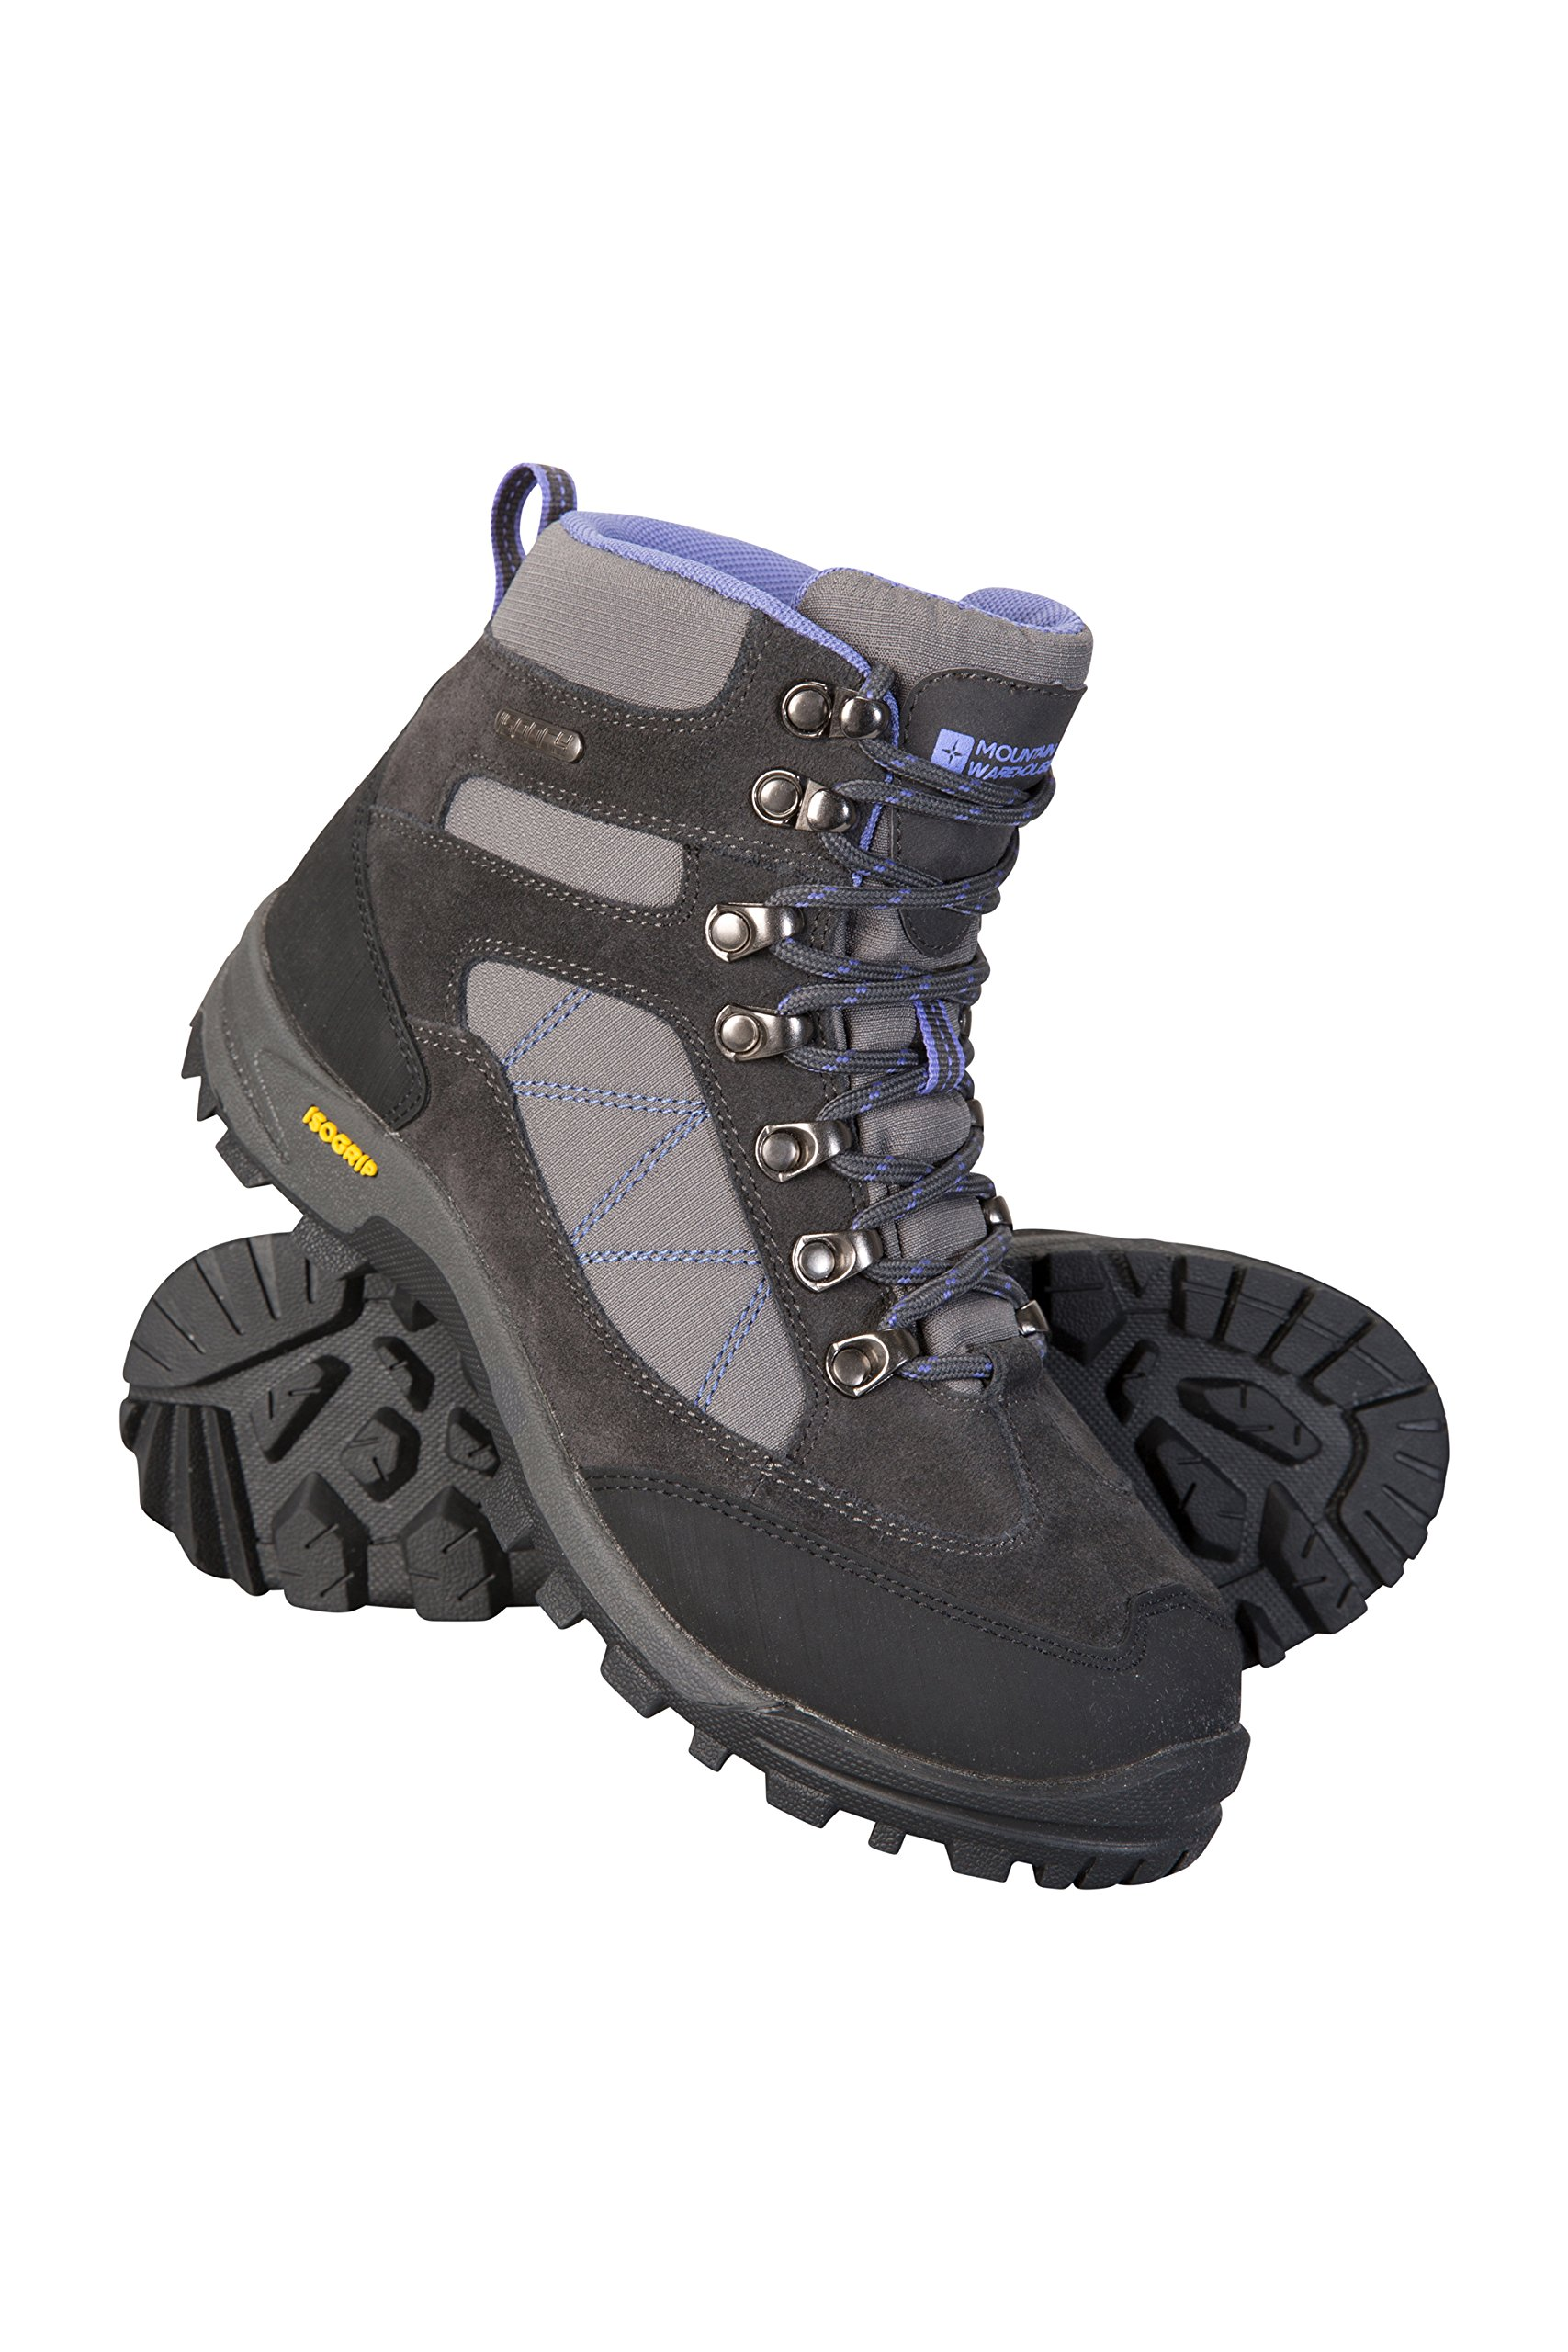 Mountain Warehouse Storm Womens Boots -Waterproof Ladies Hiking Shoes Grey 10 M US Women